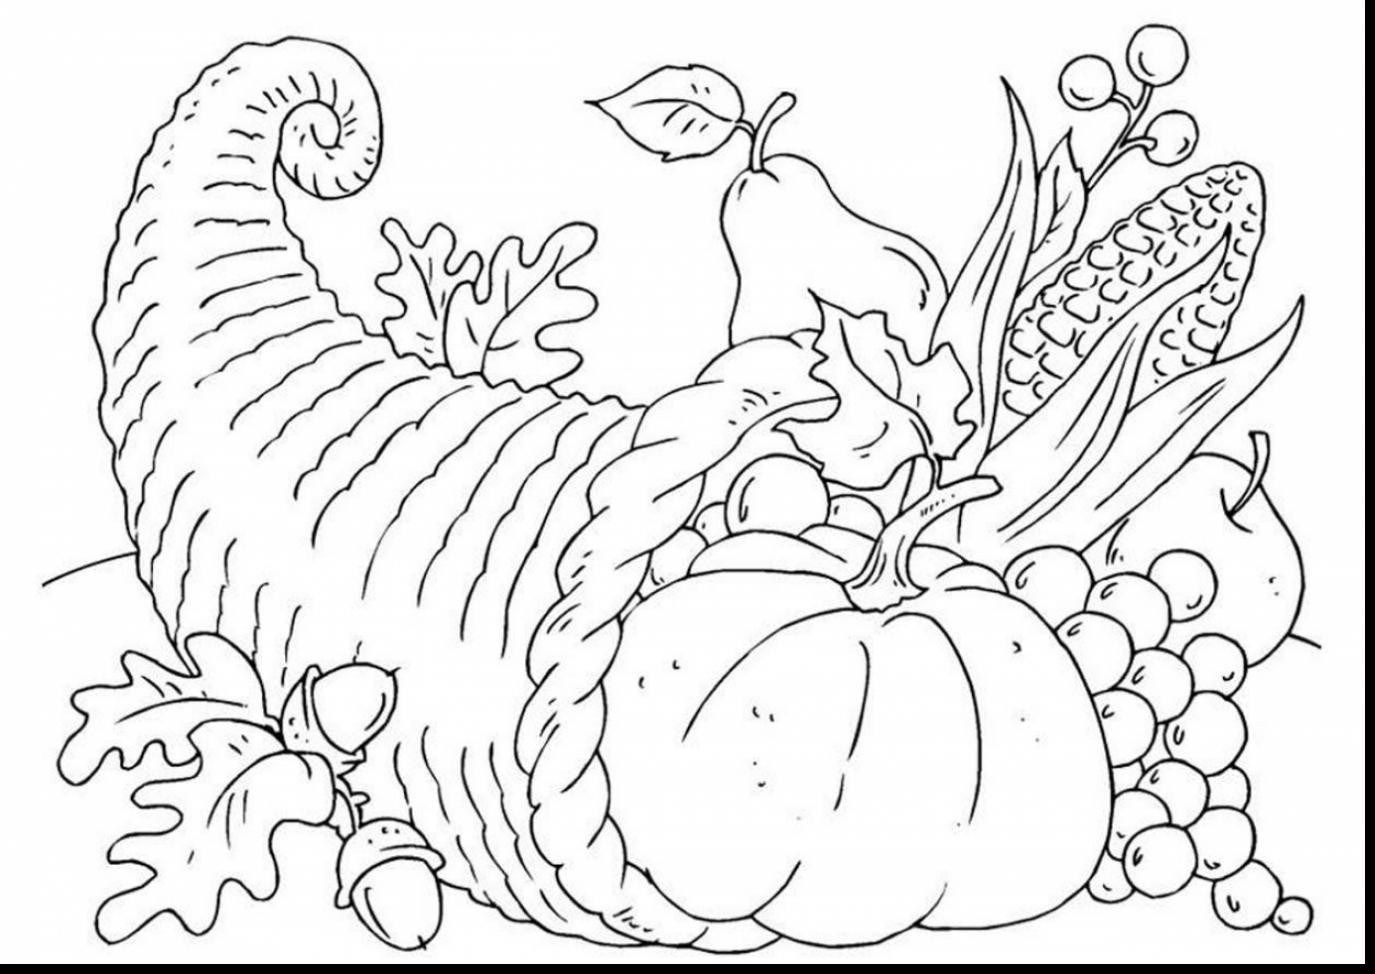 25+ Creative Image of Cornucopia Coloring Pages